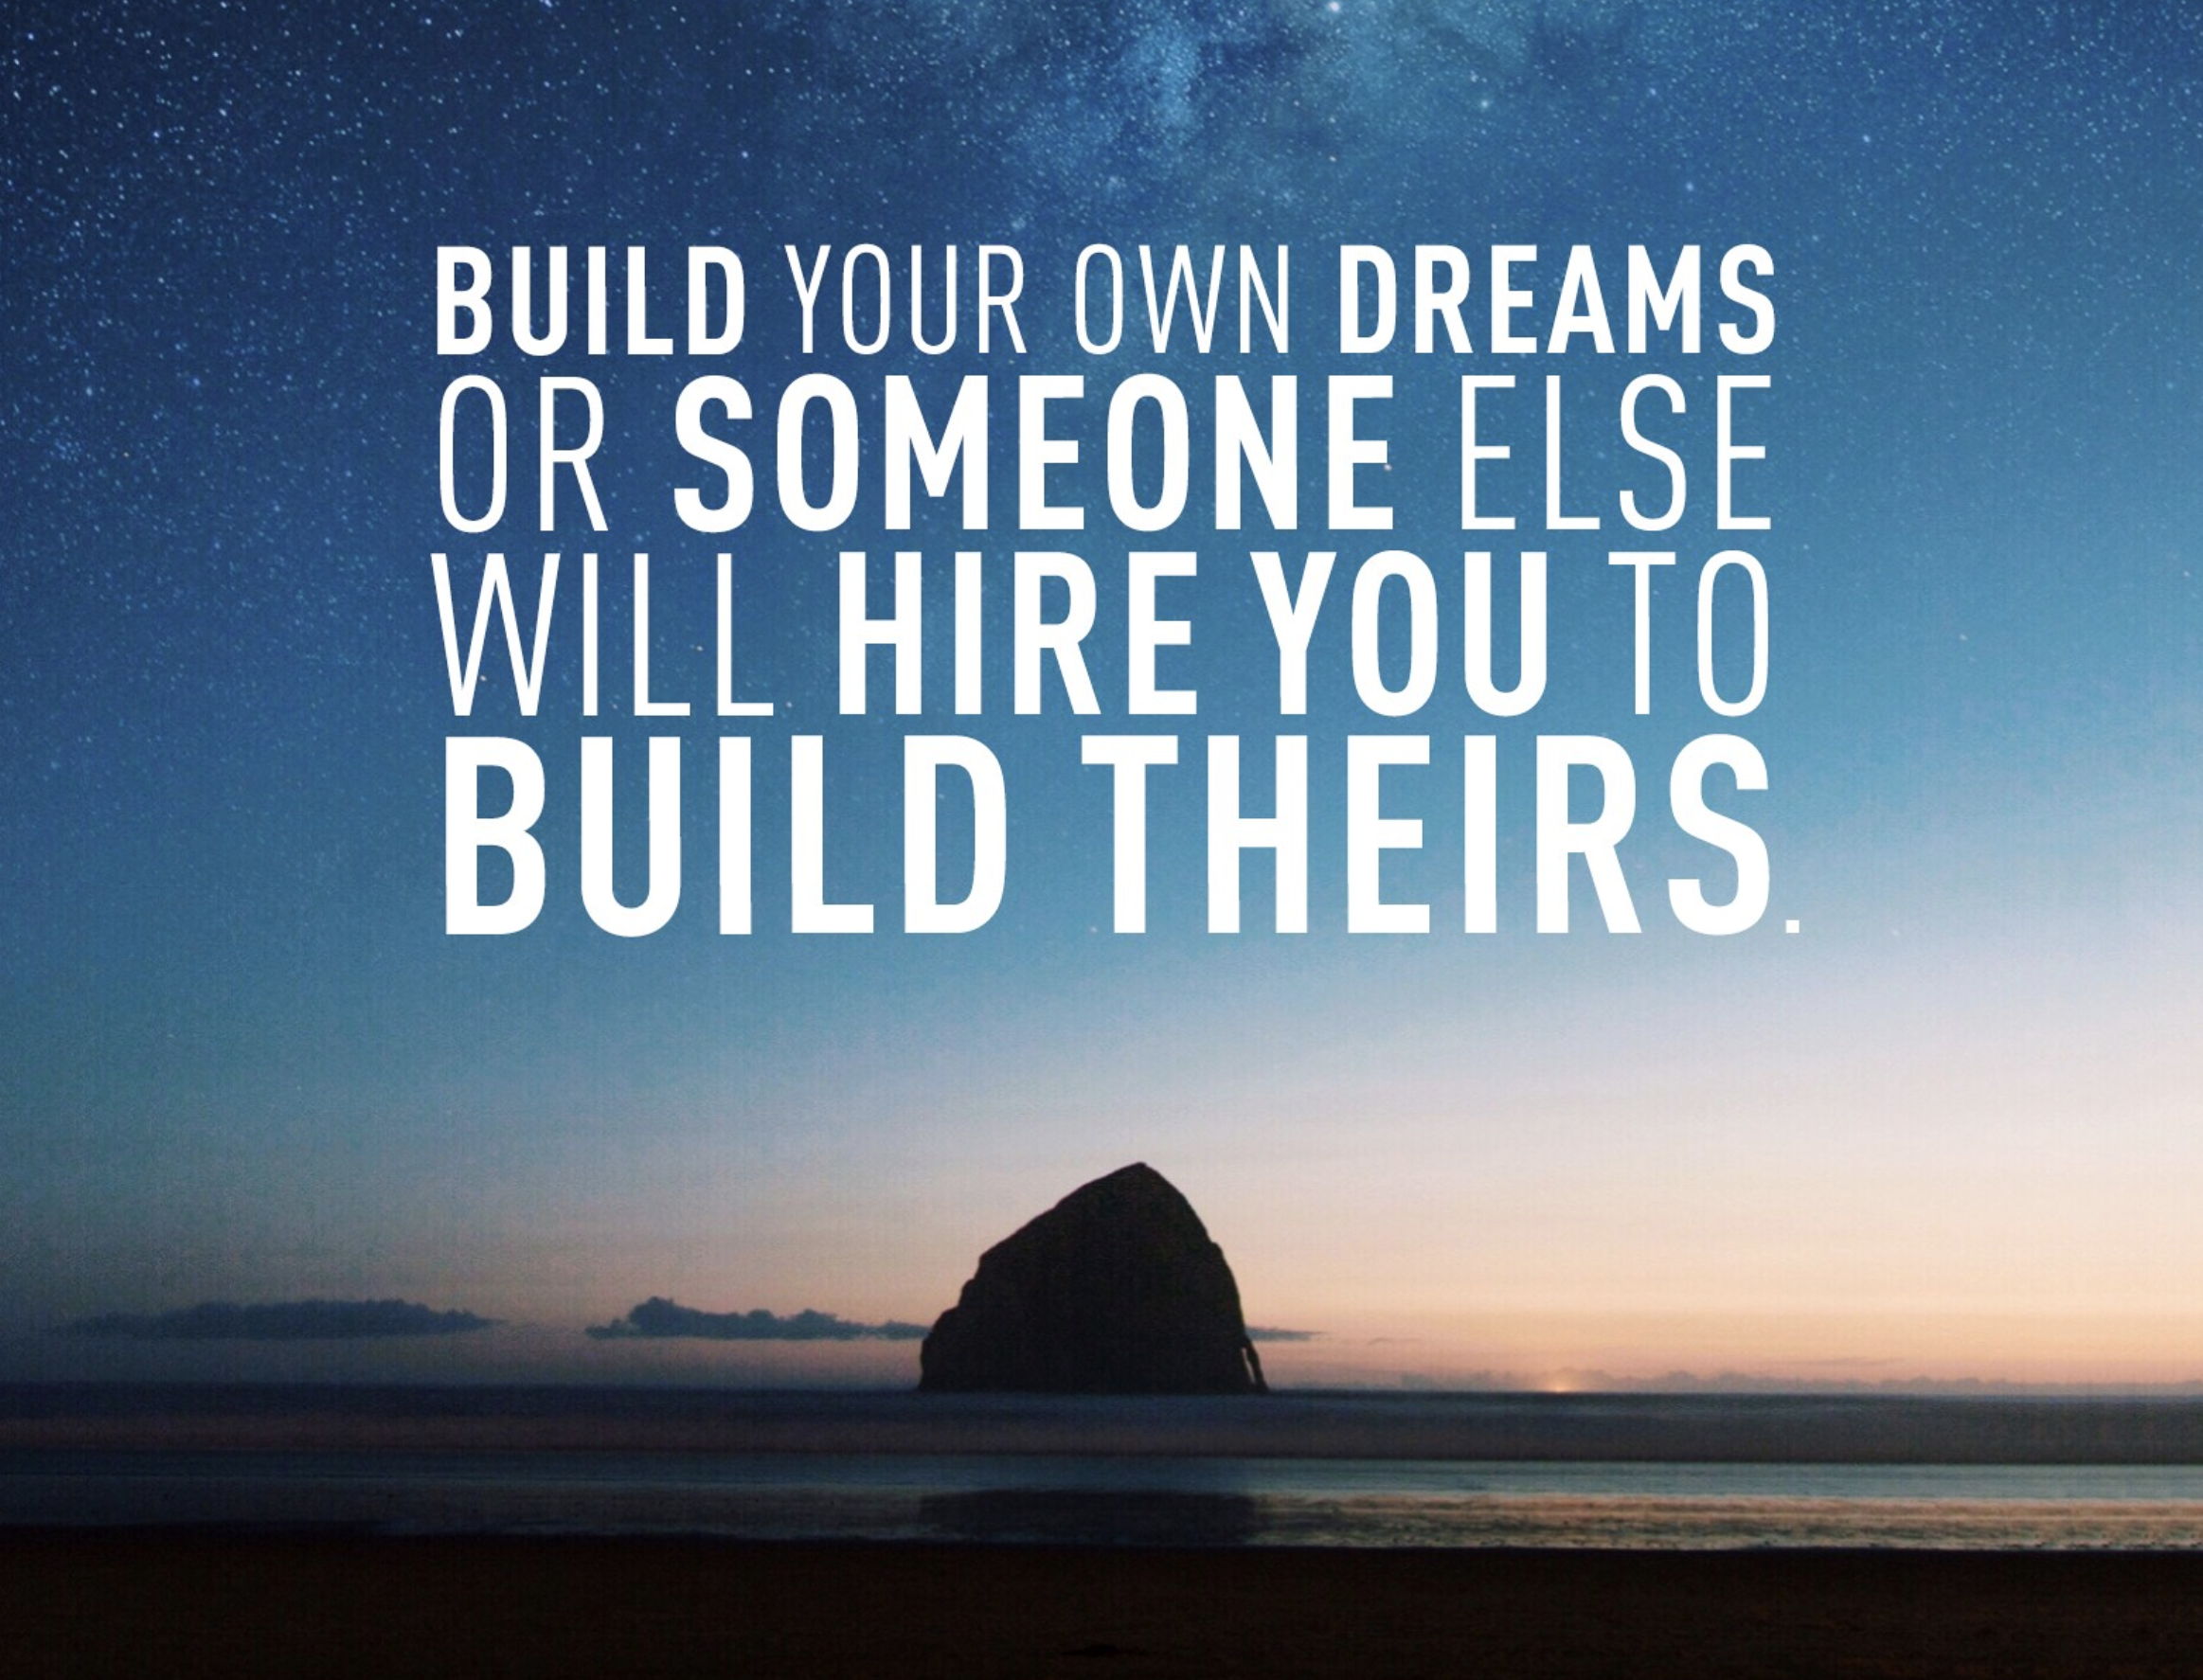 [Image] Build your own dreams or someone else will hire you to build theirs.